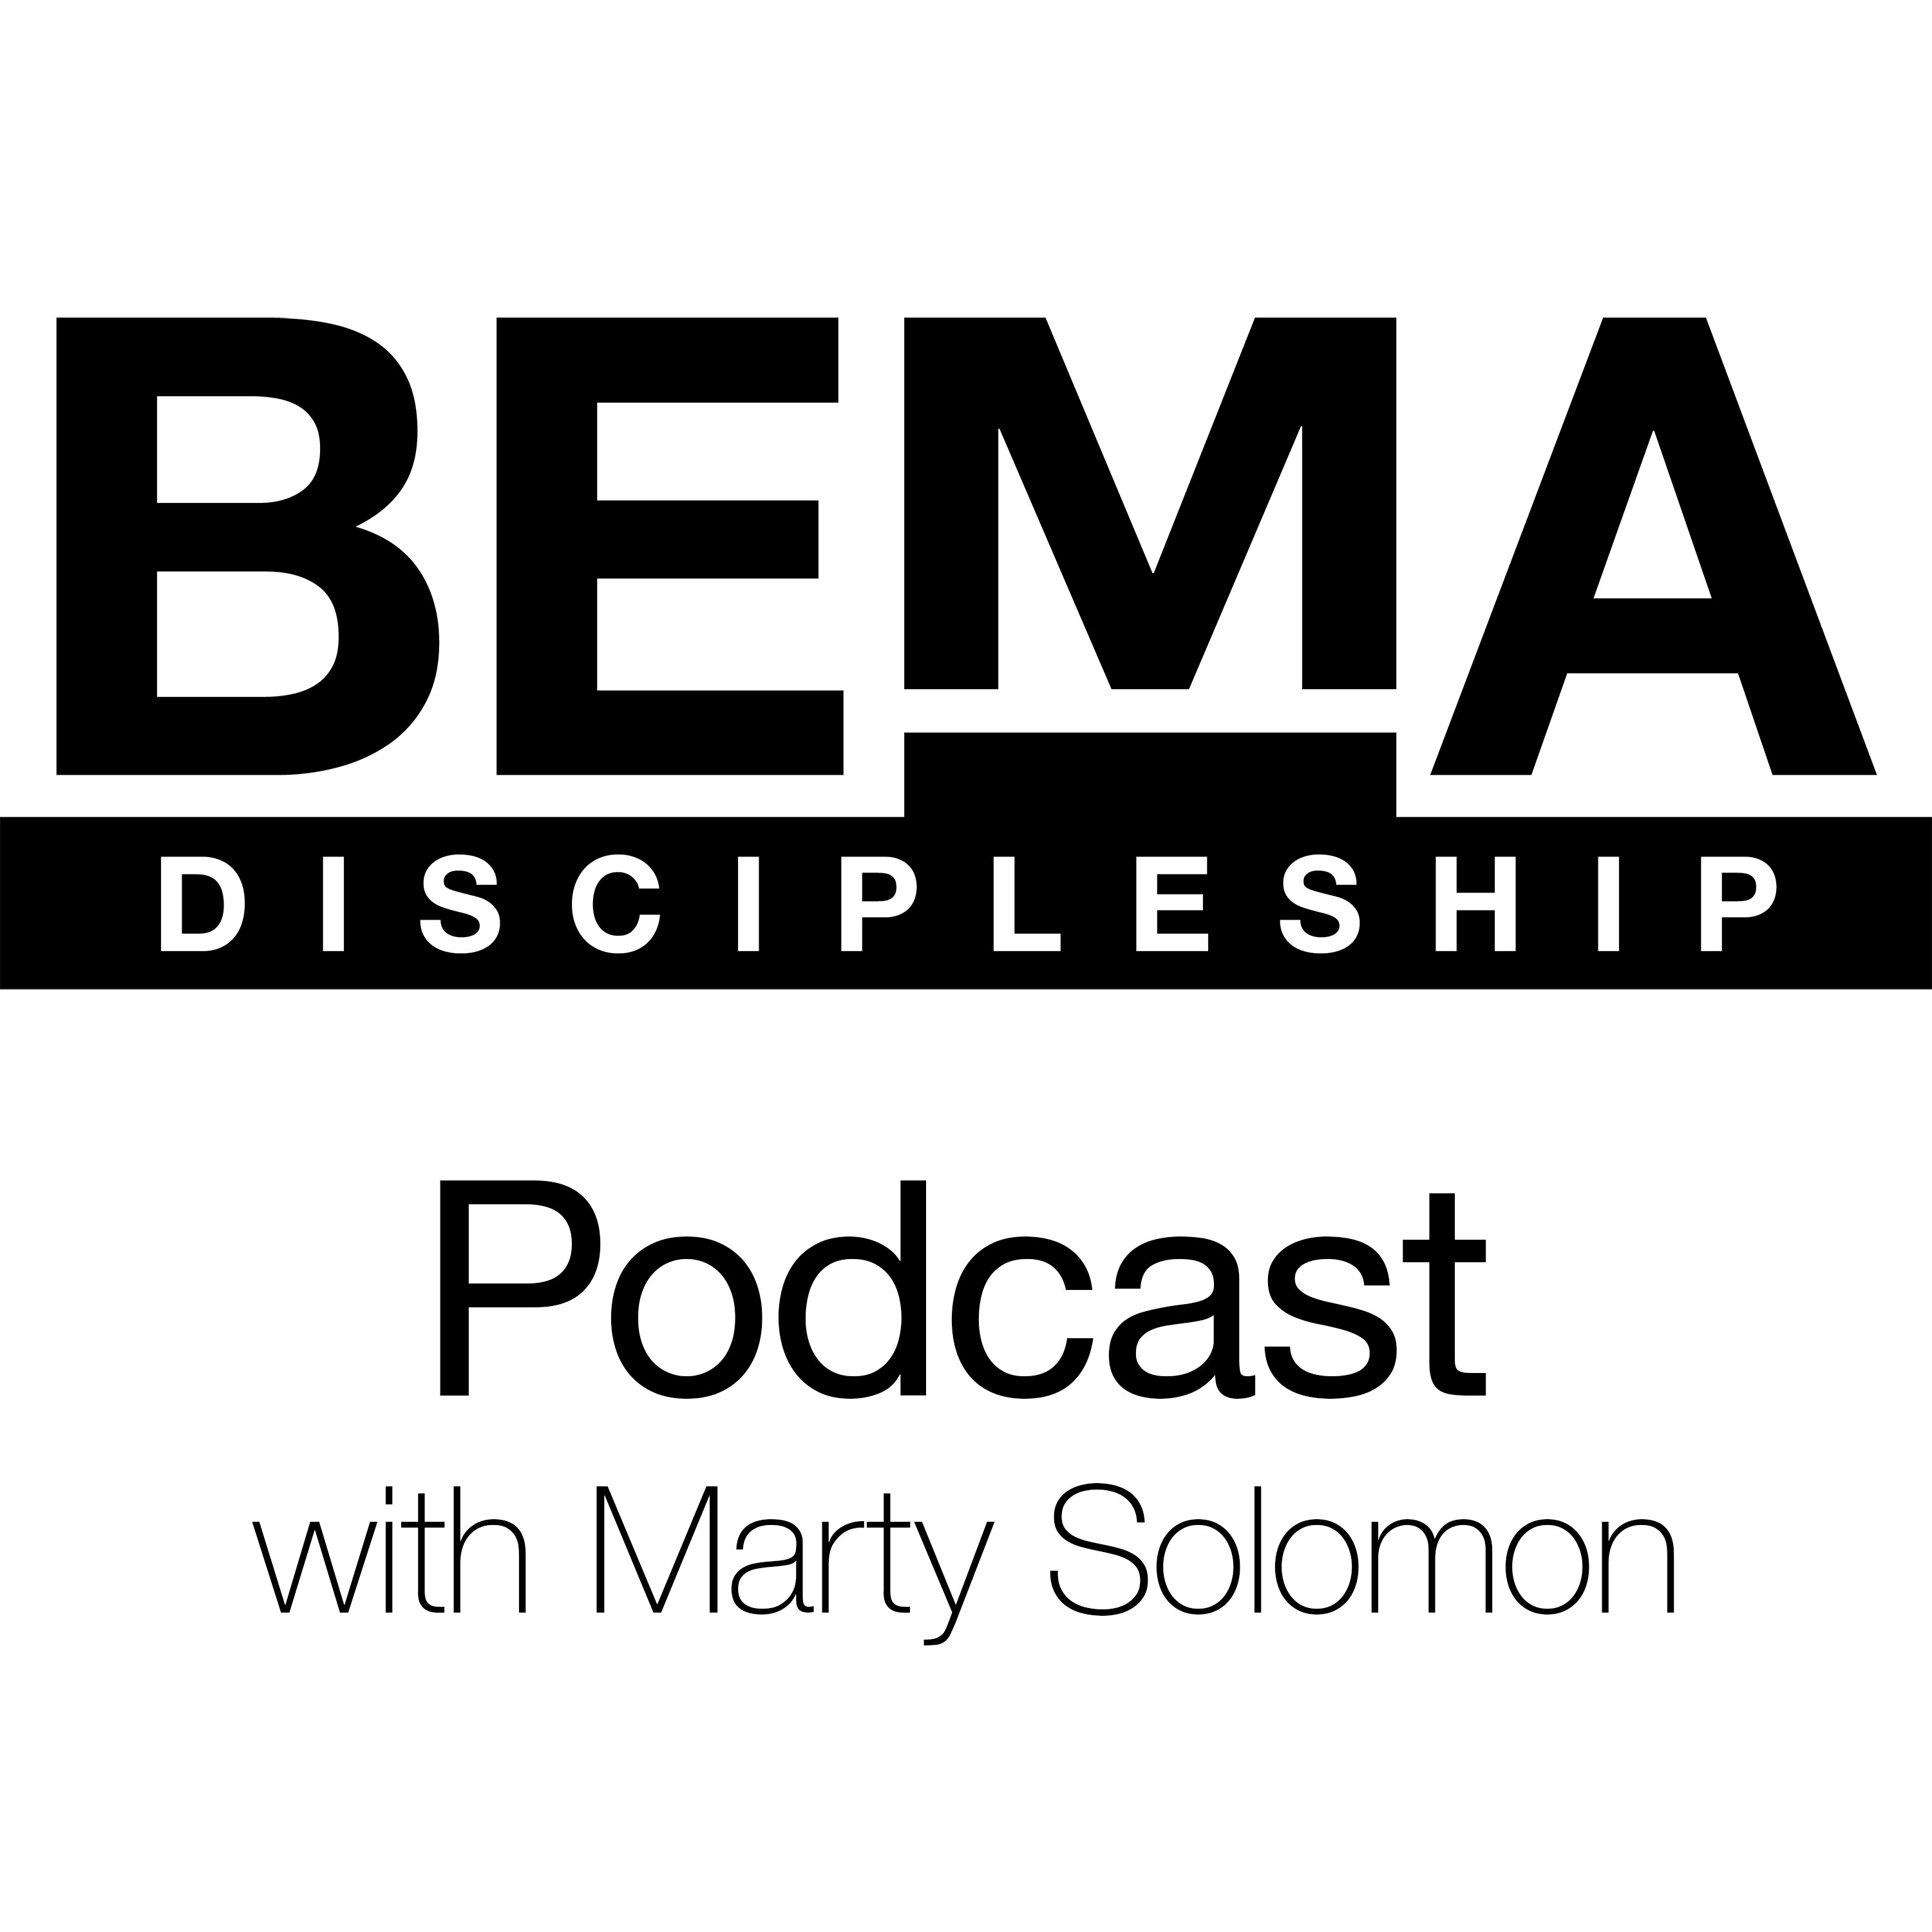 The BEMA Podcasts